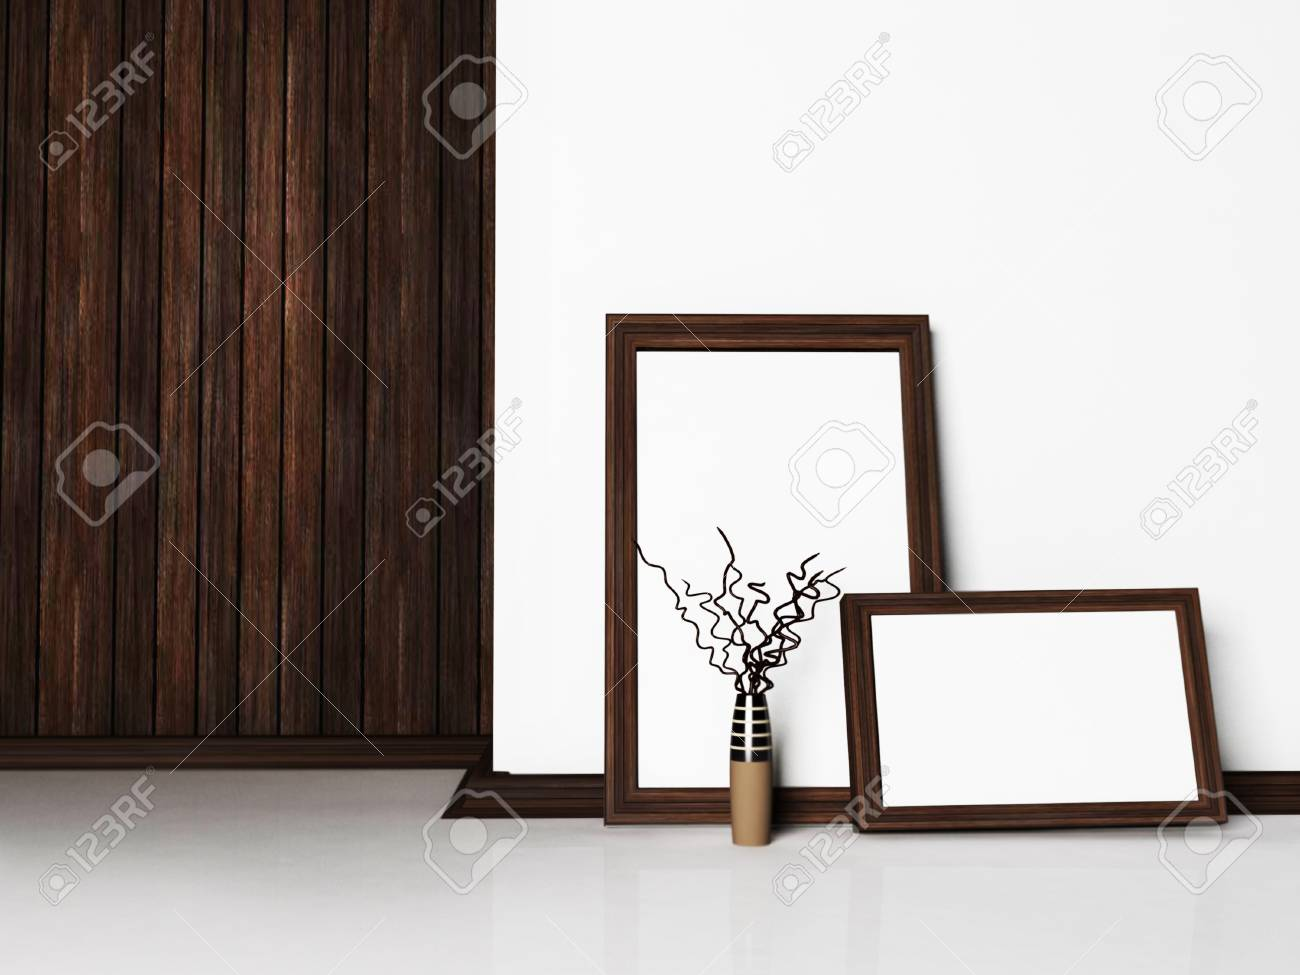 Interior design scene with the pictures and a vase Stock Photo - 12867275